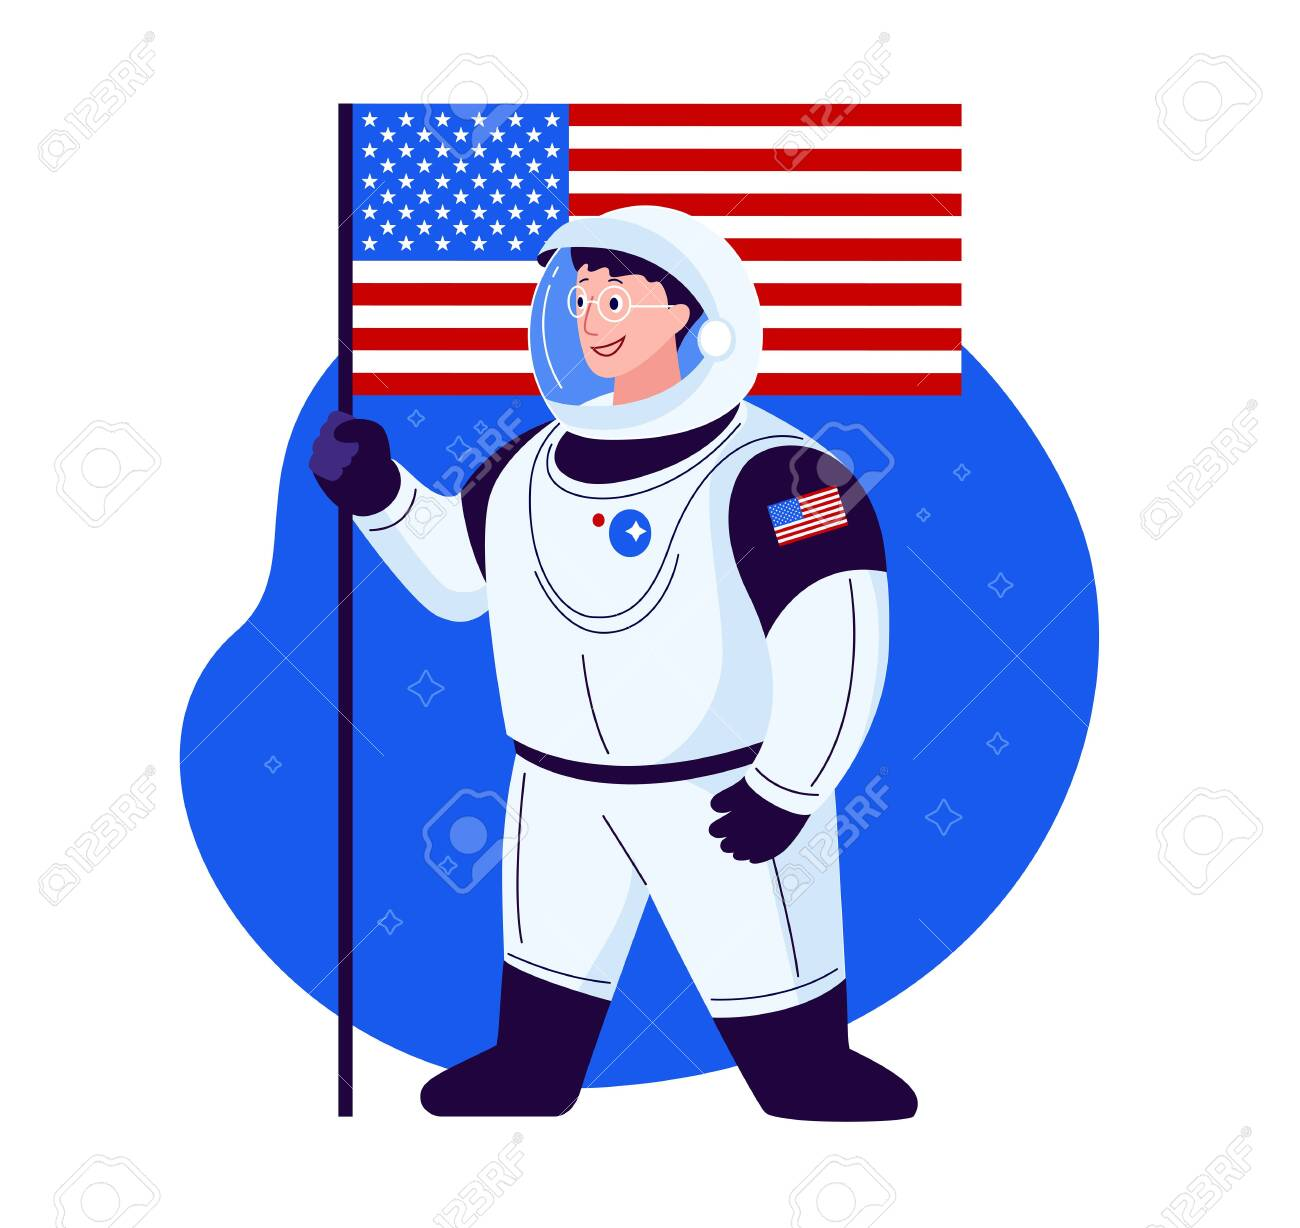 Happy spaceman character cartoon - flat style illustration - United States modern astronaut in glasses, smiling - flat style - 149694518